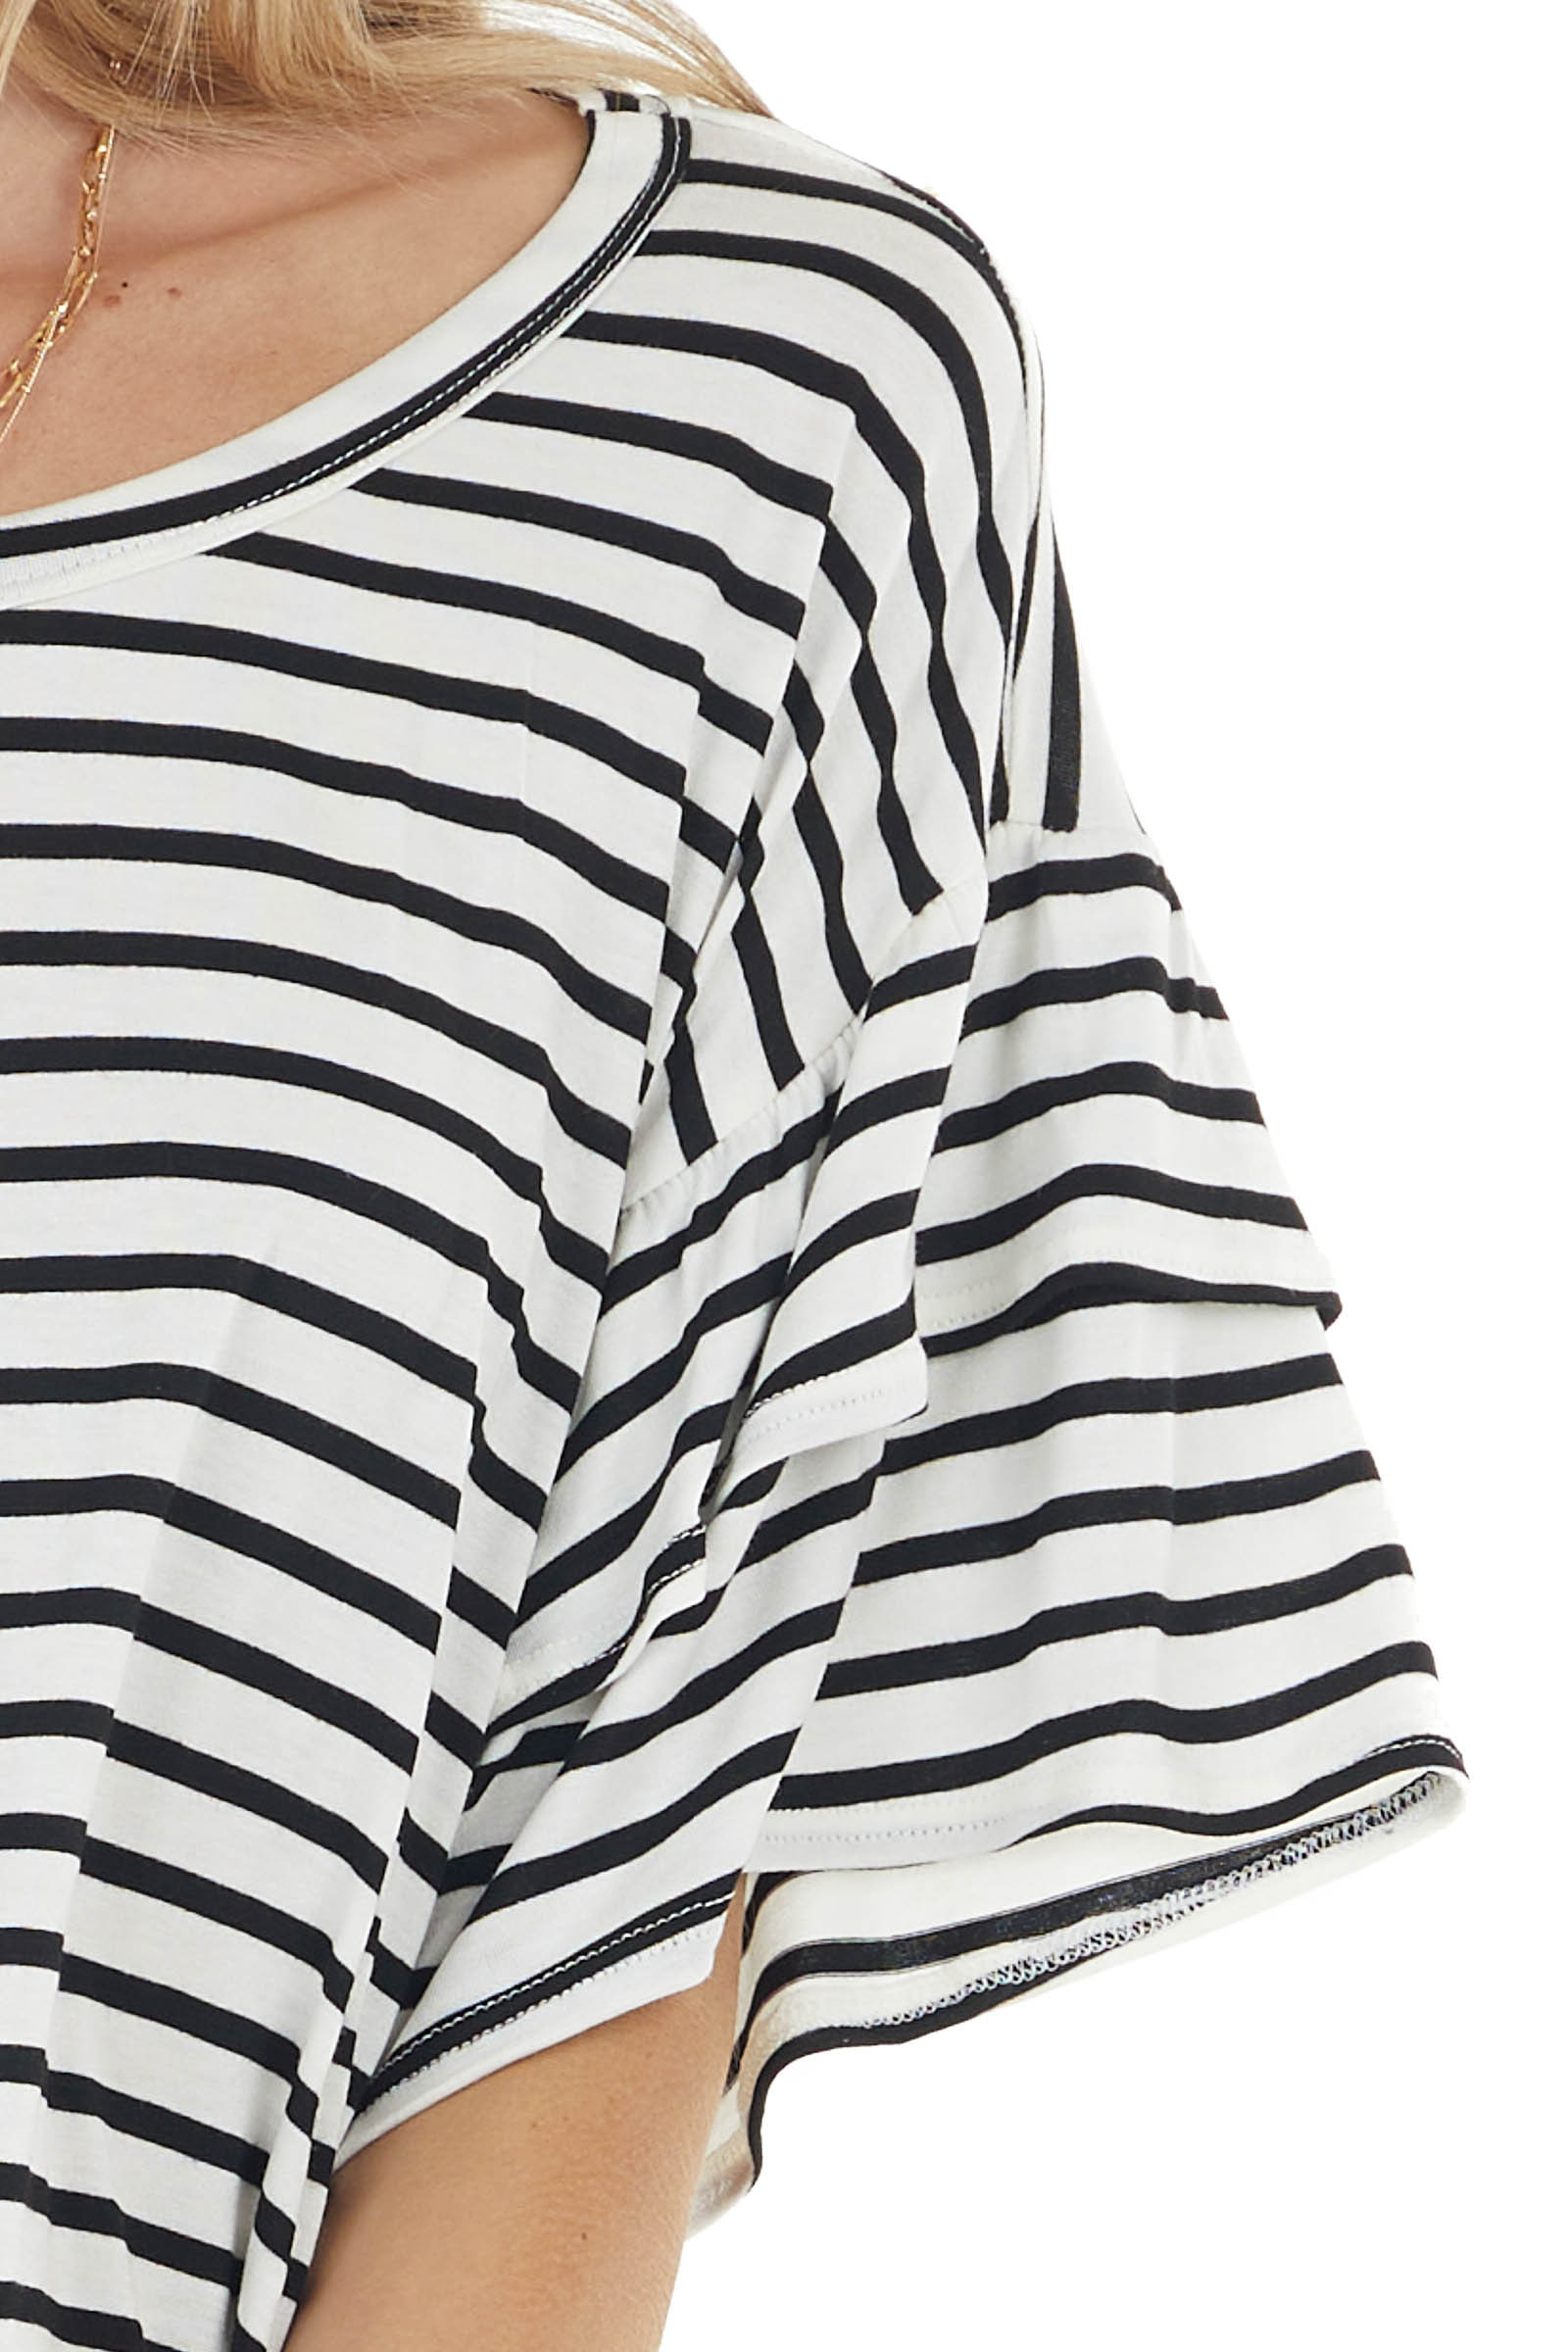 Ivory and Black Striped Knit Top with Short Ruffle Sleeves